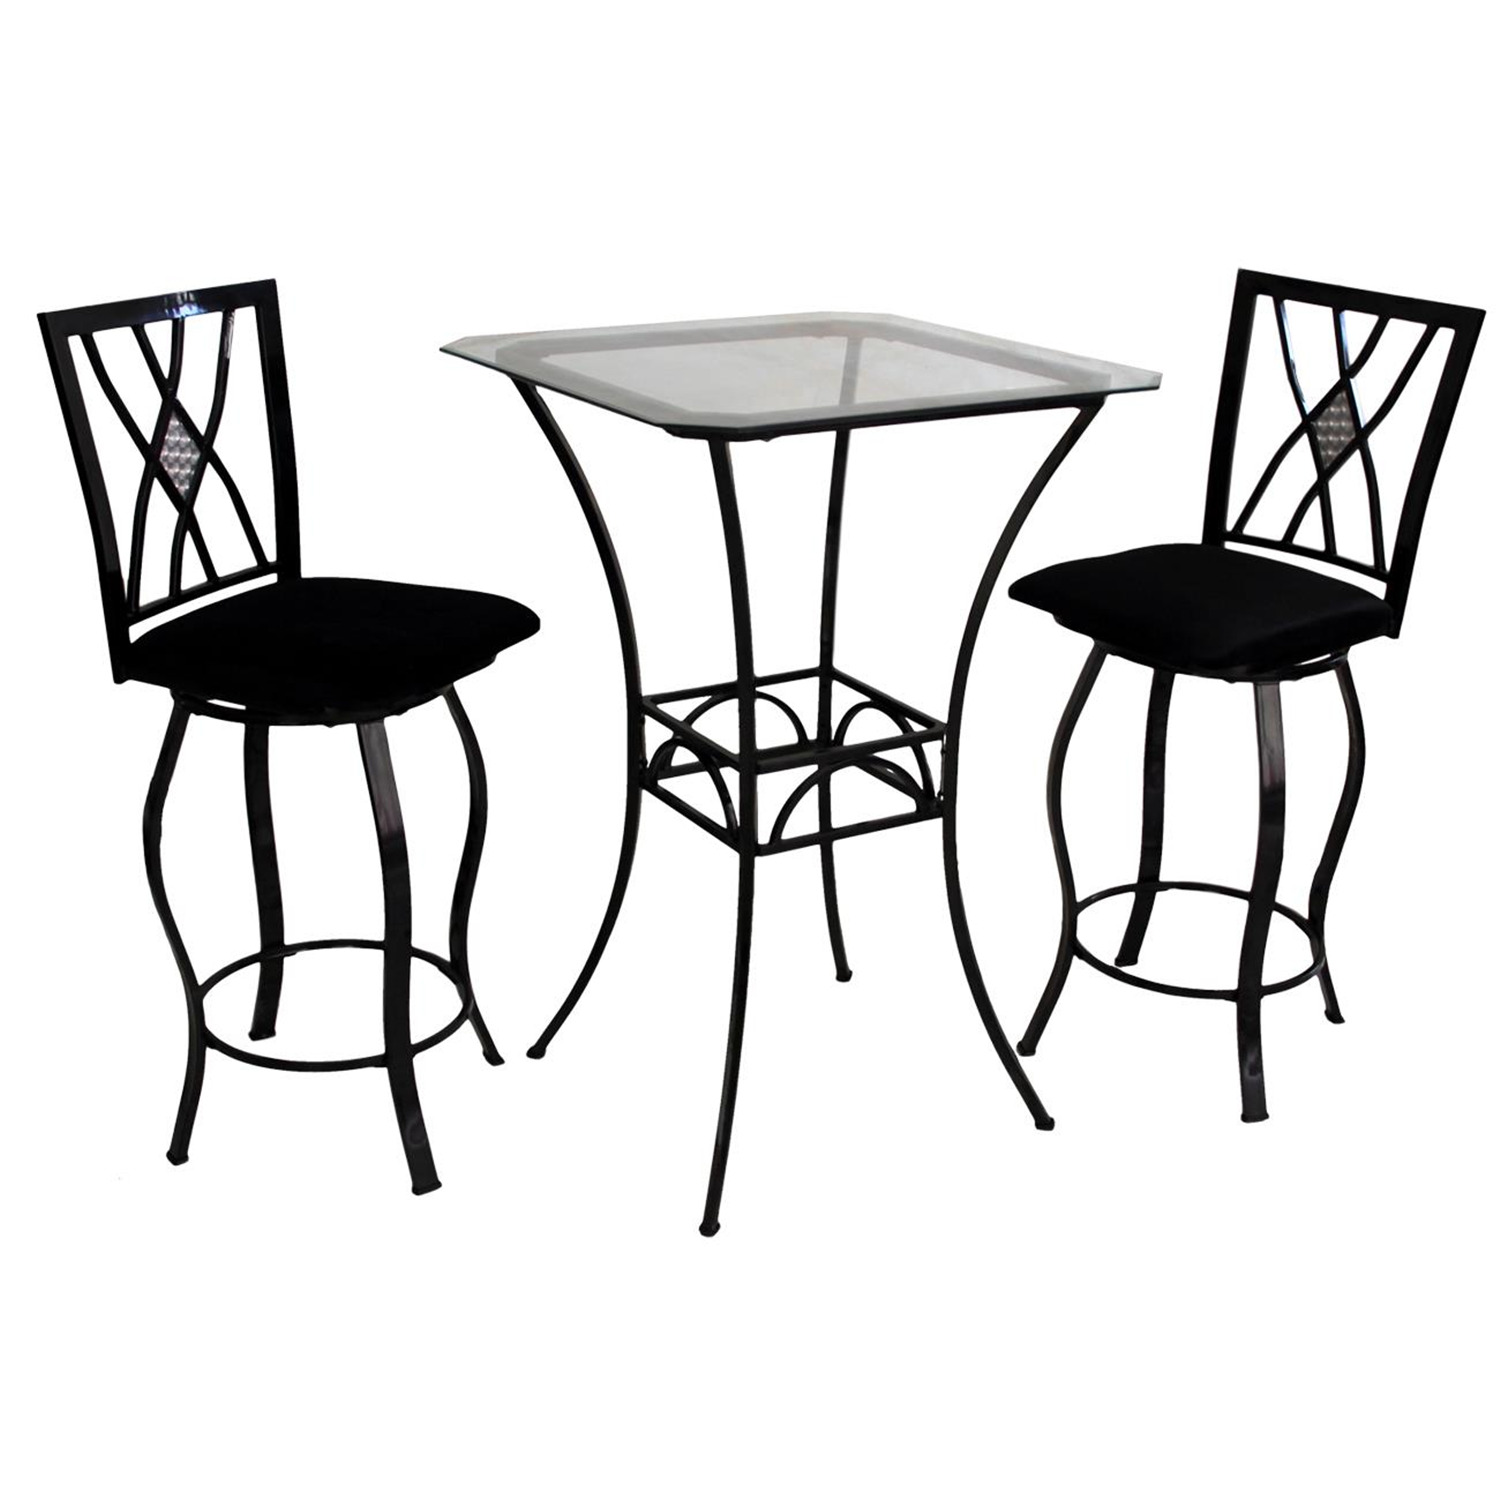 Home Source Pub Table 4 Chairs By OJ Commerce 24402